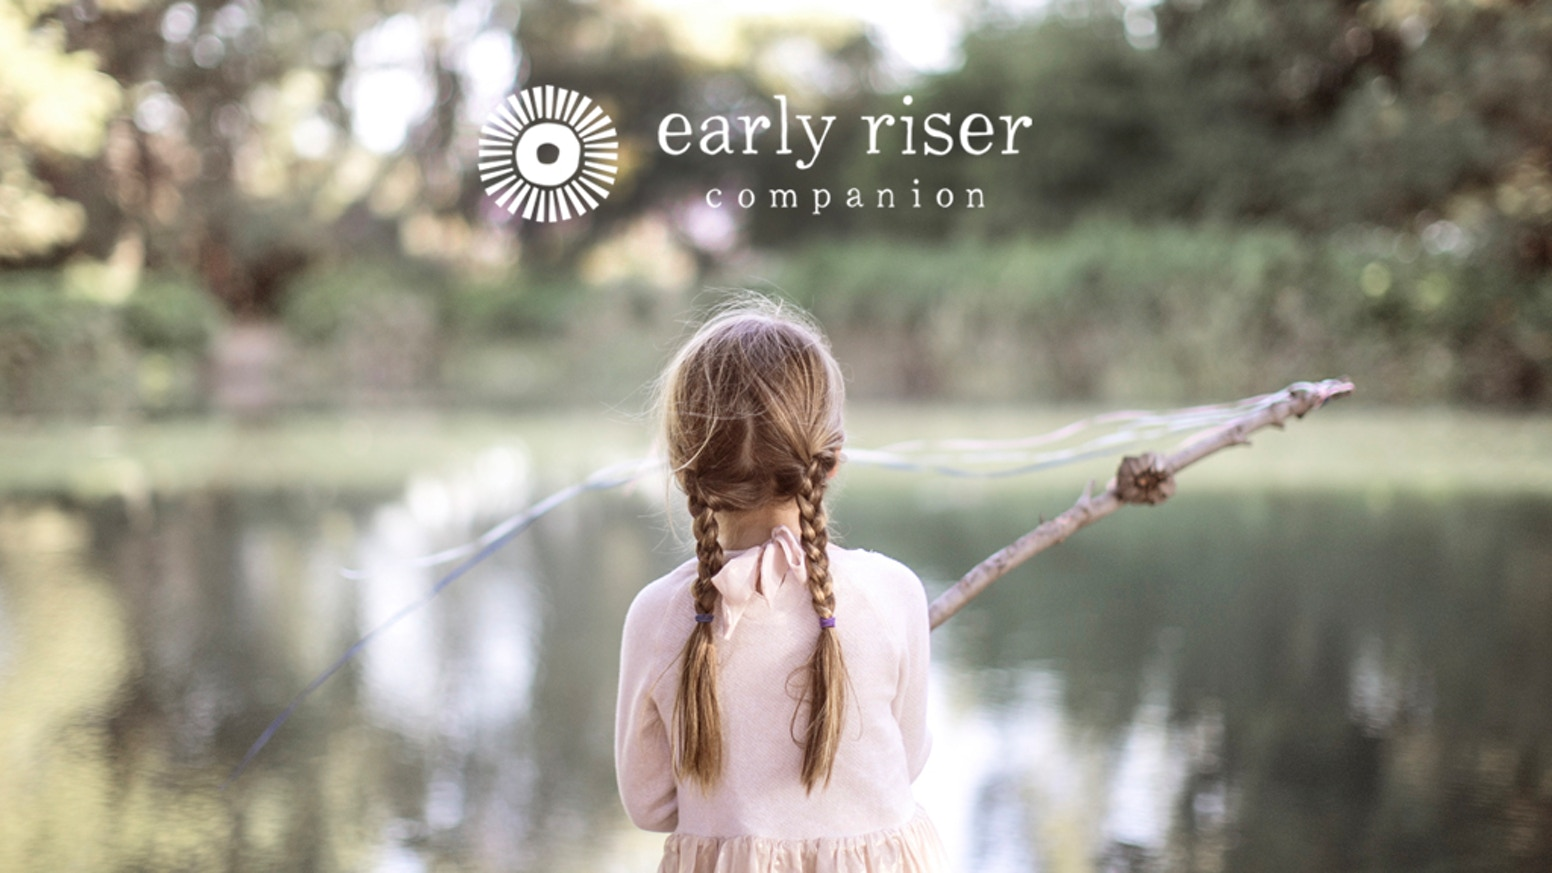 Raise family consciousness. Rhythms, rituals, traditions and transitions to celebrate the season of childhood. Created for you and your little ones to enjoy. Out late Spring 2019. Email earlyrisercompanion@gmail.com for pre-order info.